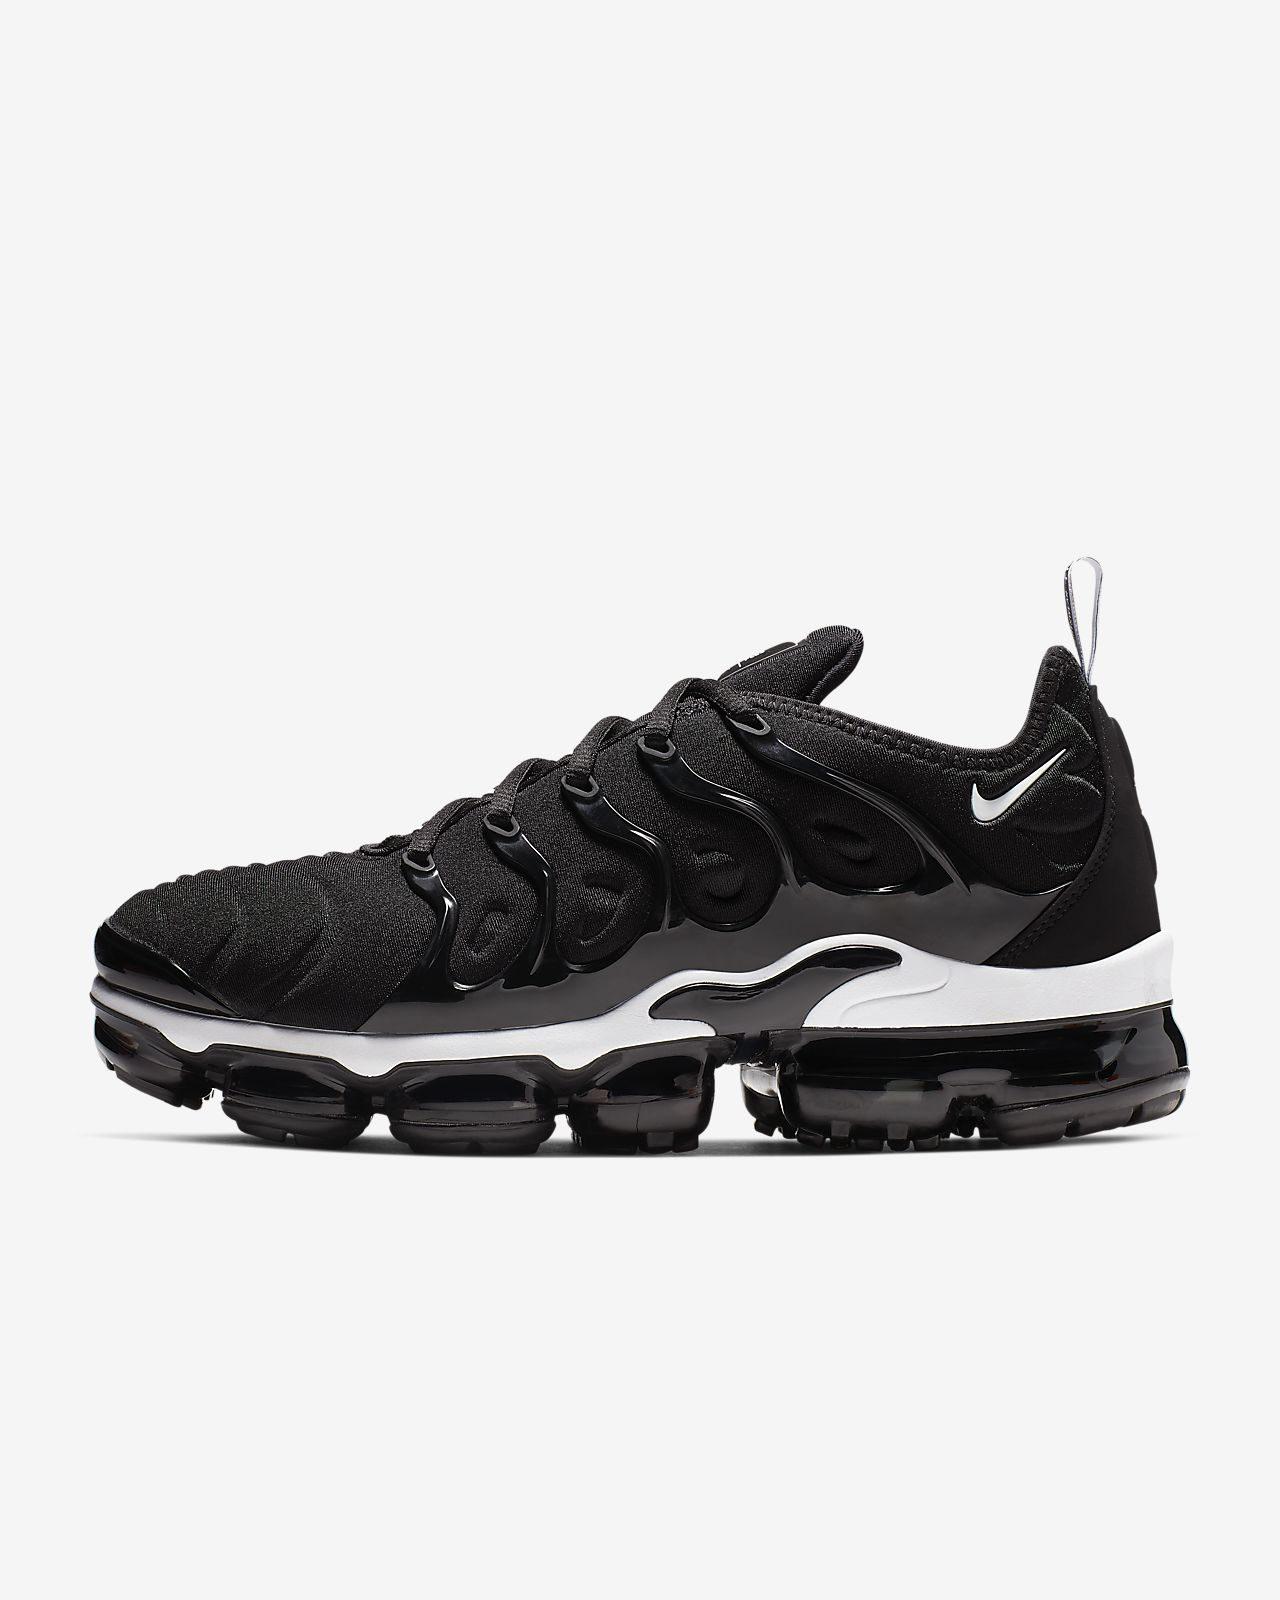 a4f0f0e4b3a Nike Air VaporMax Plus Men s Shoe. Nike.com IE